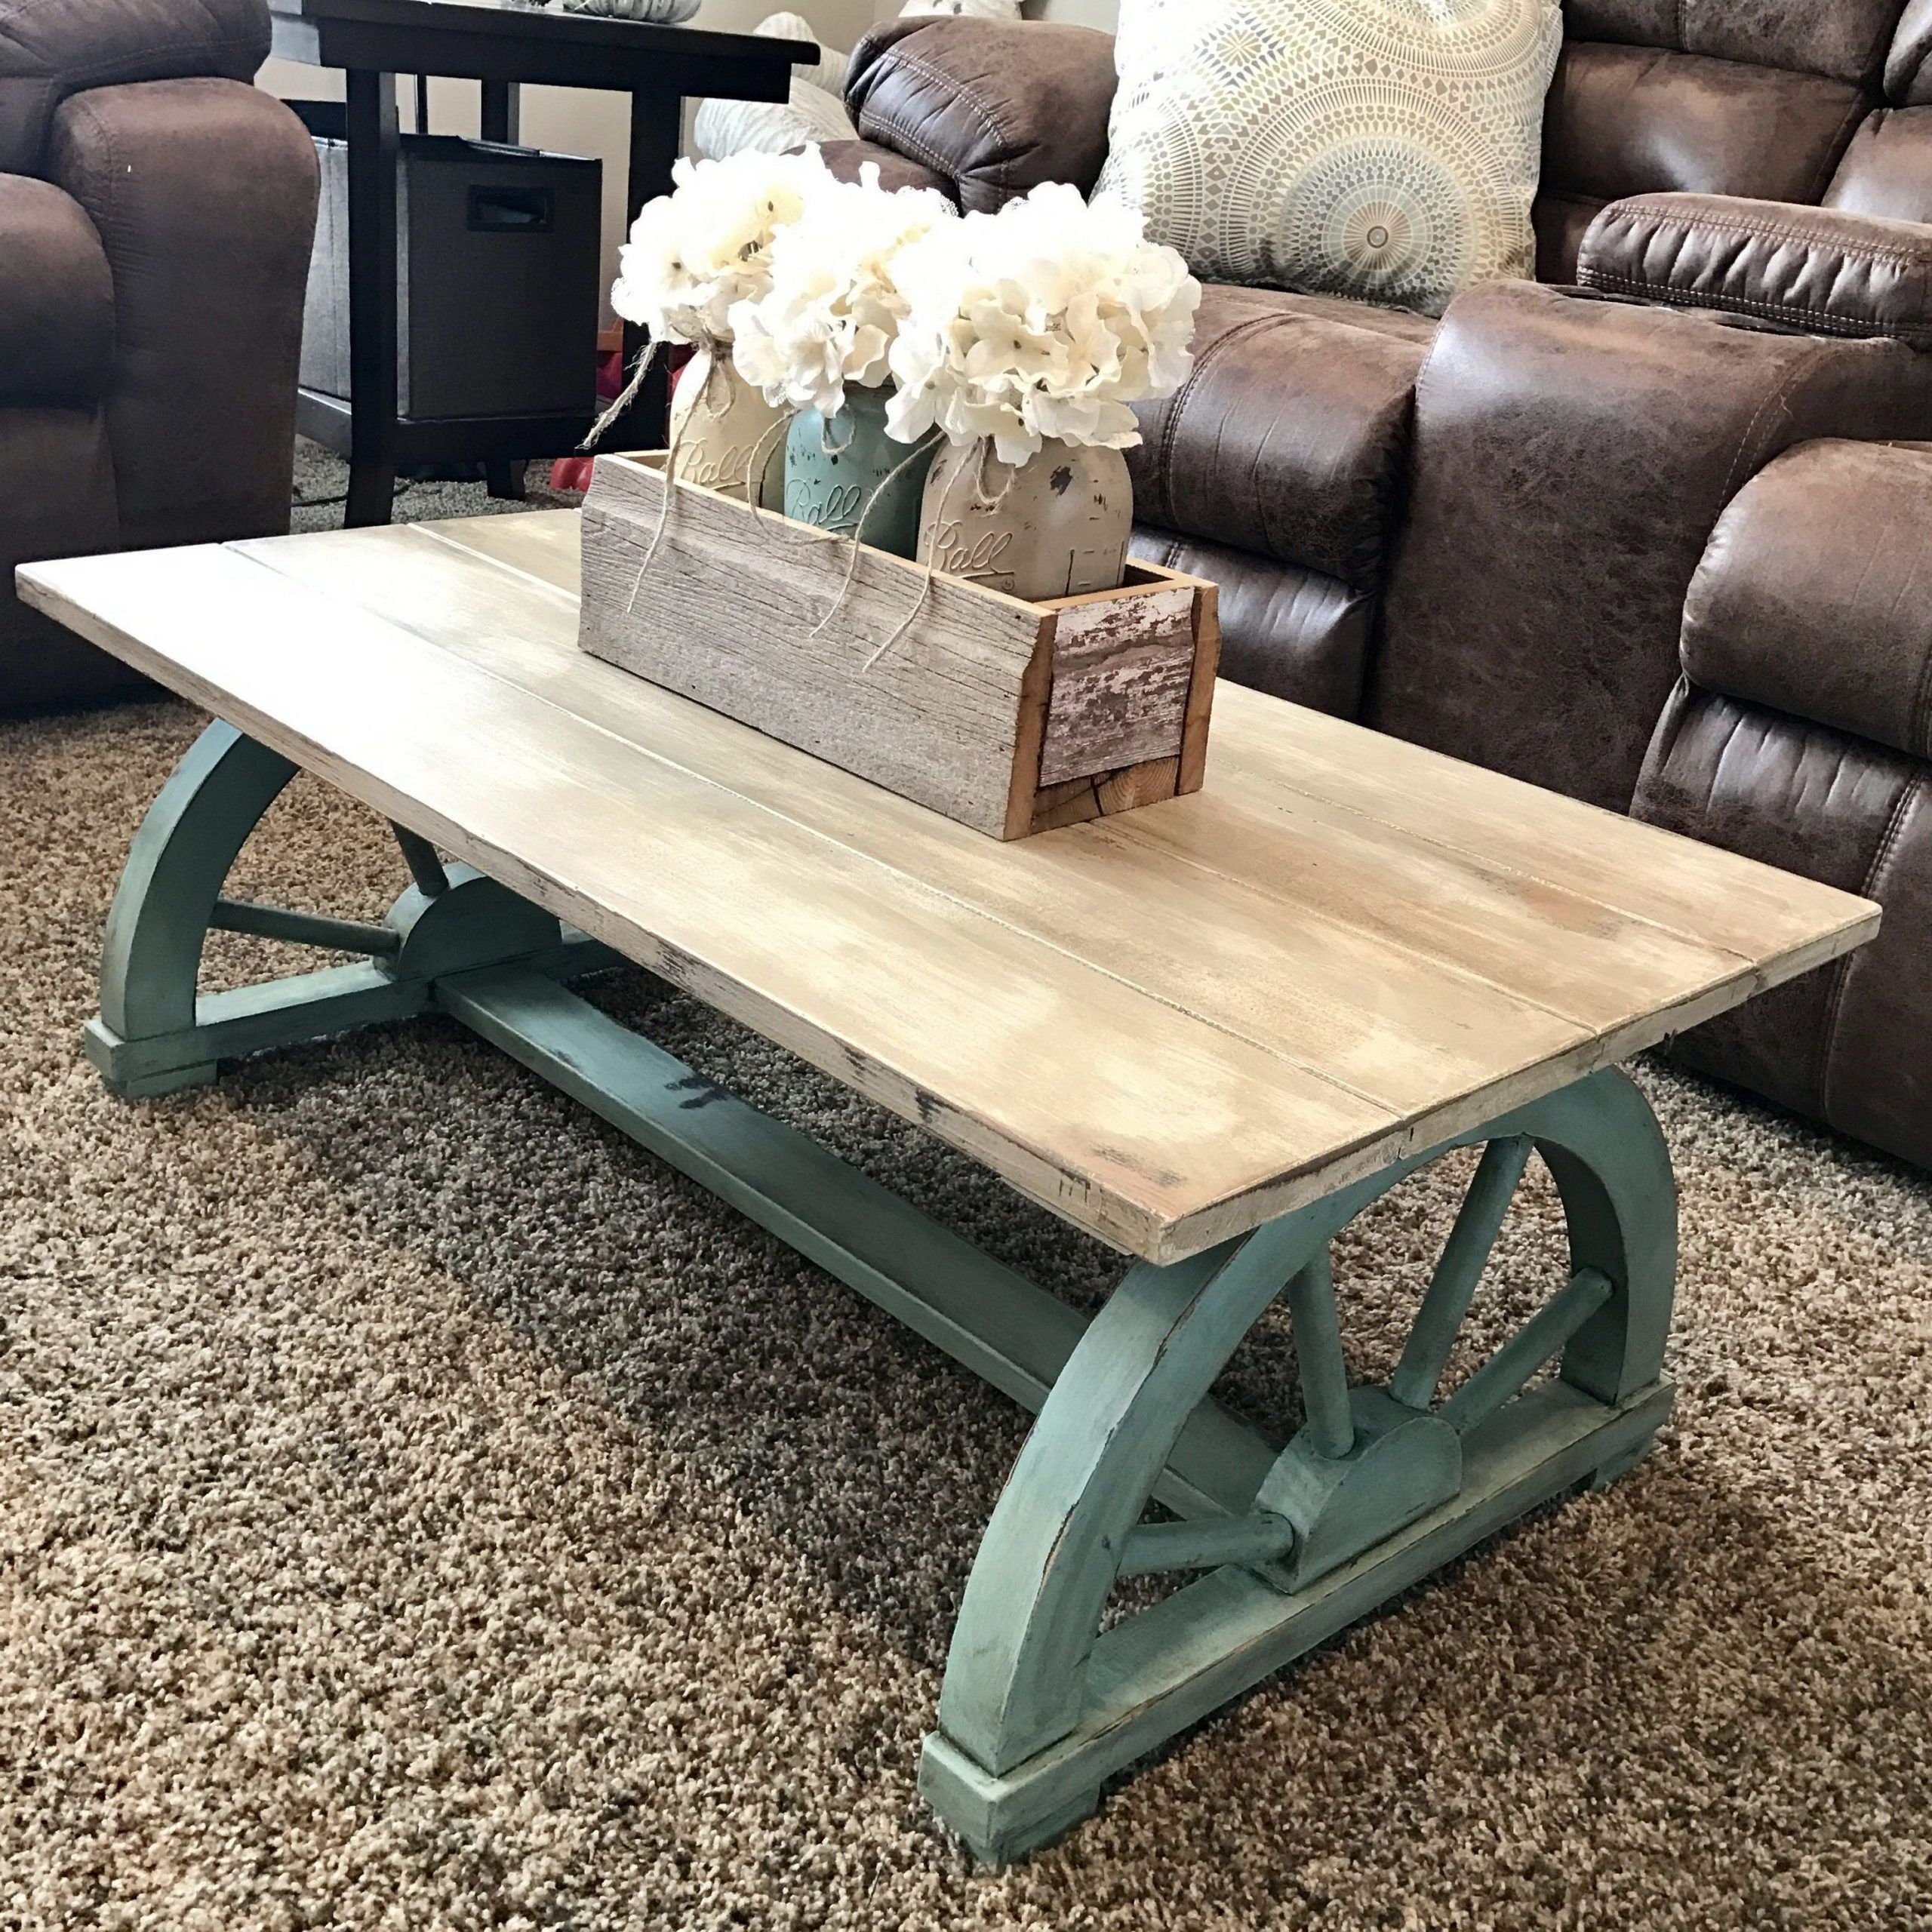 20 Best Diy Industrial Coffee Table Ideas That Will Blow Your Mind